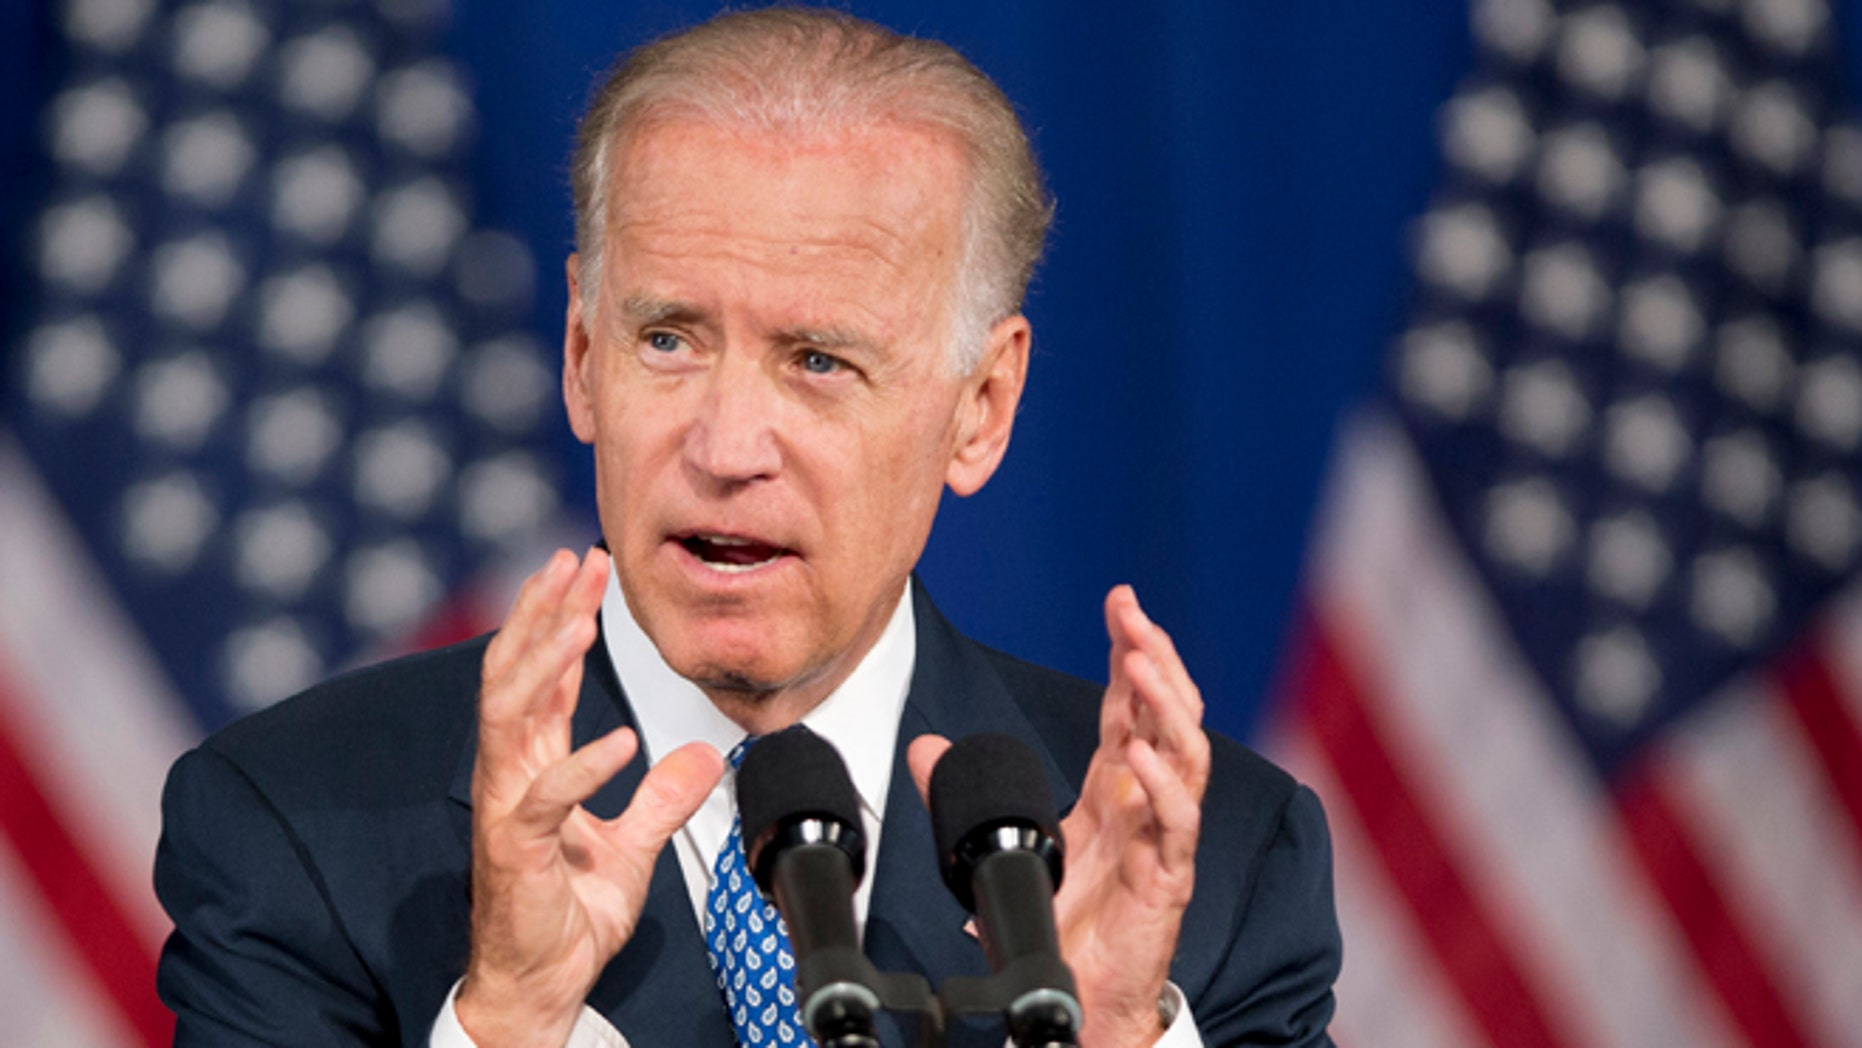 Former Vice President Joe Biden said he doesn't think Democrats should try to impeach President Trump if they win back the House of Representatives after the midterm elections.